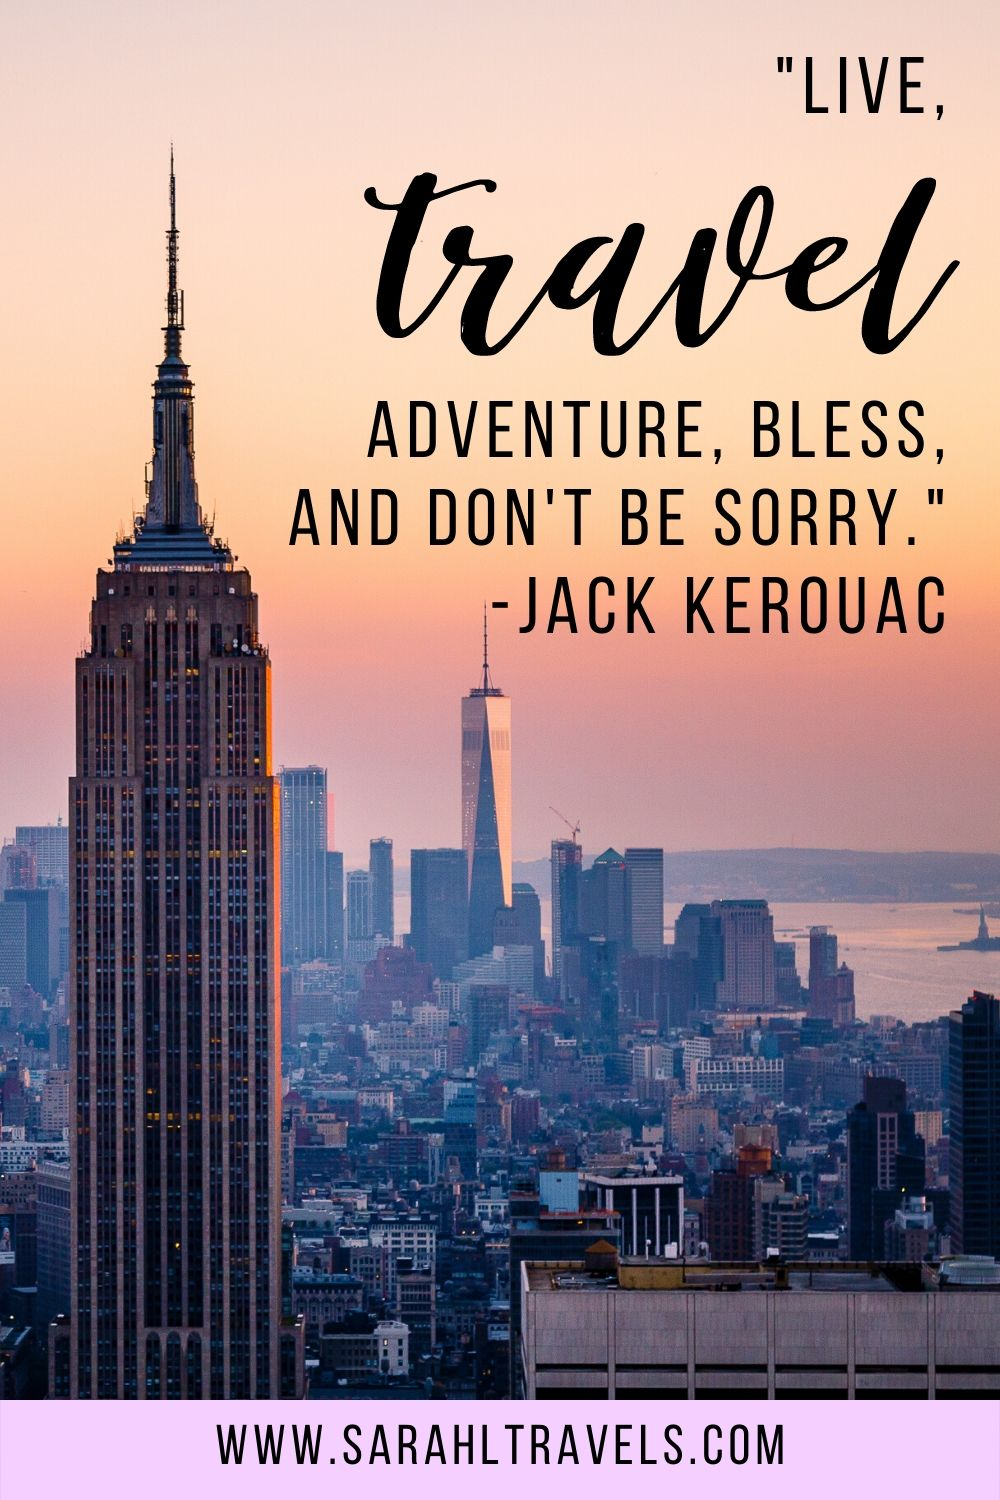 """New York City with quote """"Live, travel, adventure, bless, and don't be sorry."""""""